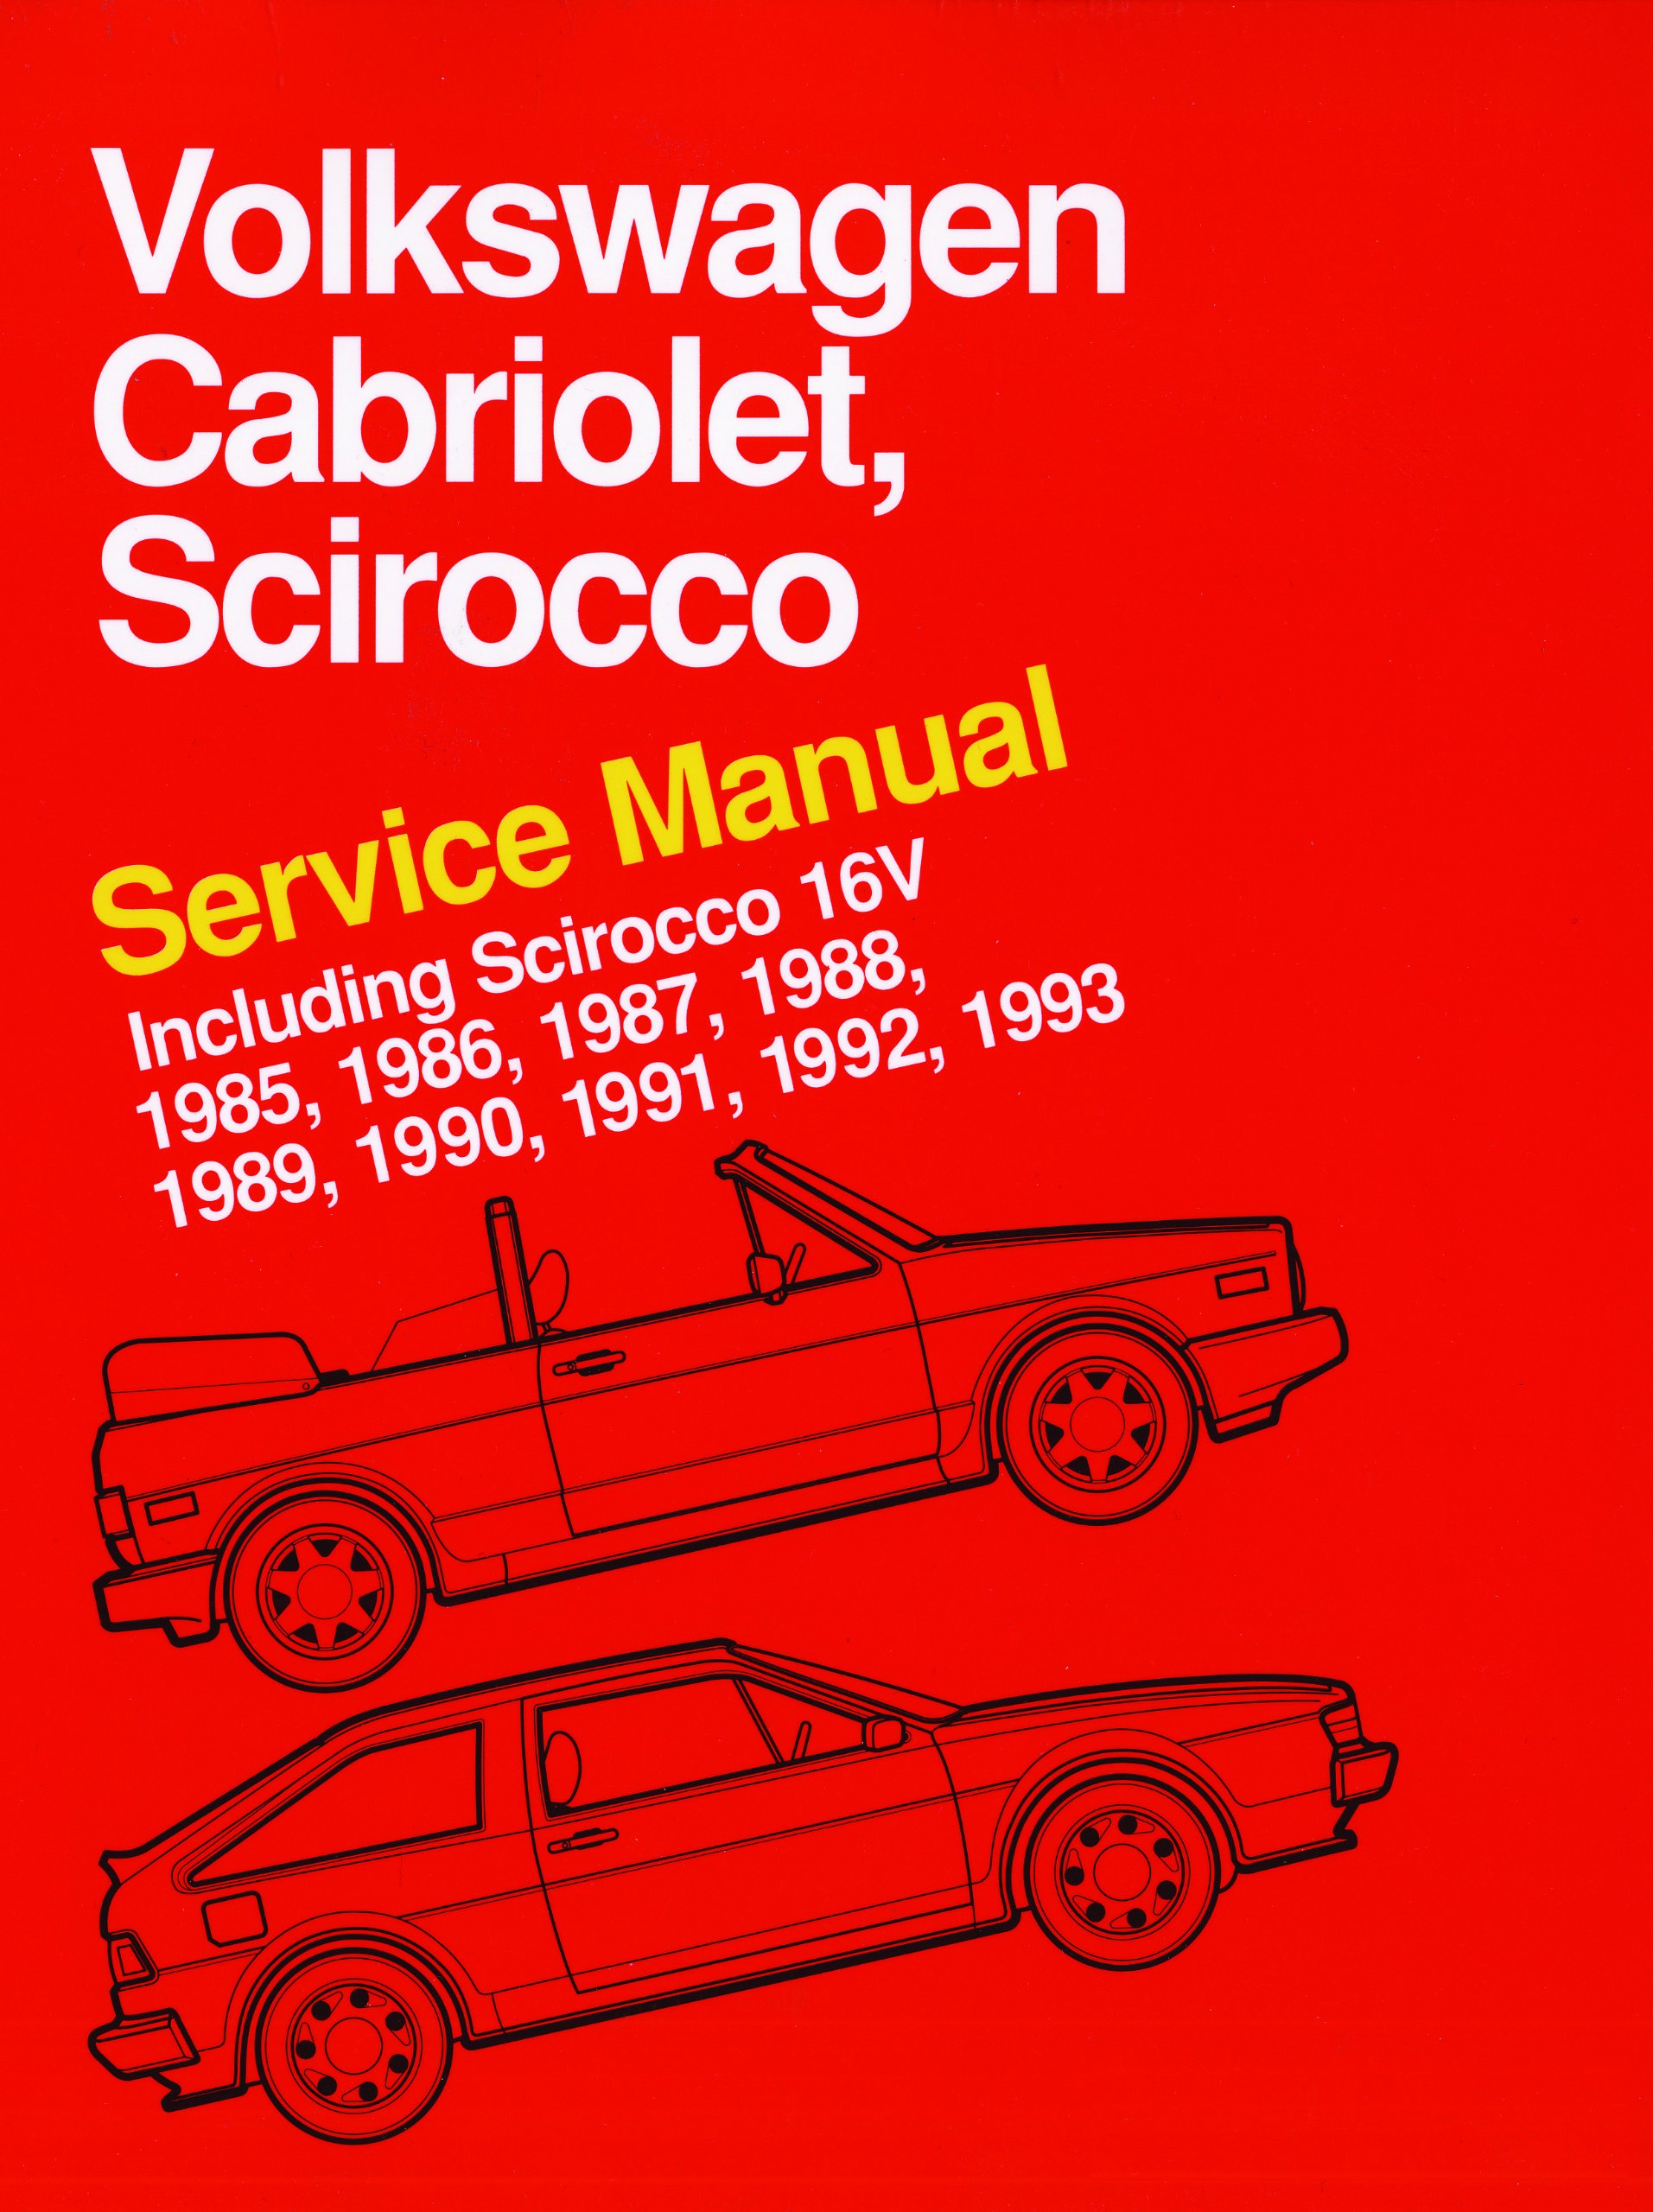 Volkswagen Cabriolet, Scirocco Service Manual: 1985, 1986, 1987, 1988,  1989, 1990, 1991, 1992, 1993: Including Scirocco 16v: Bentley Publishers:  ...